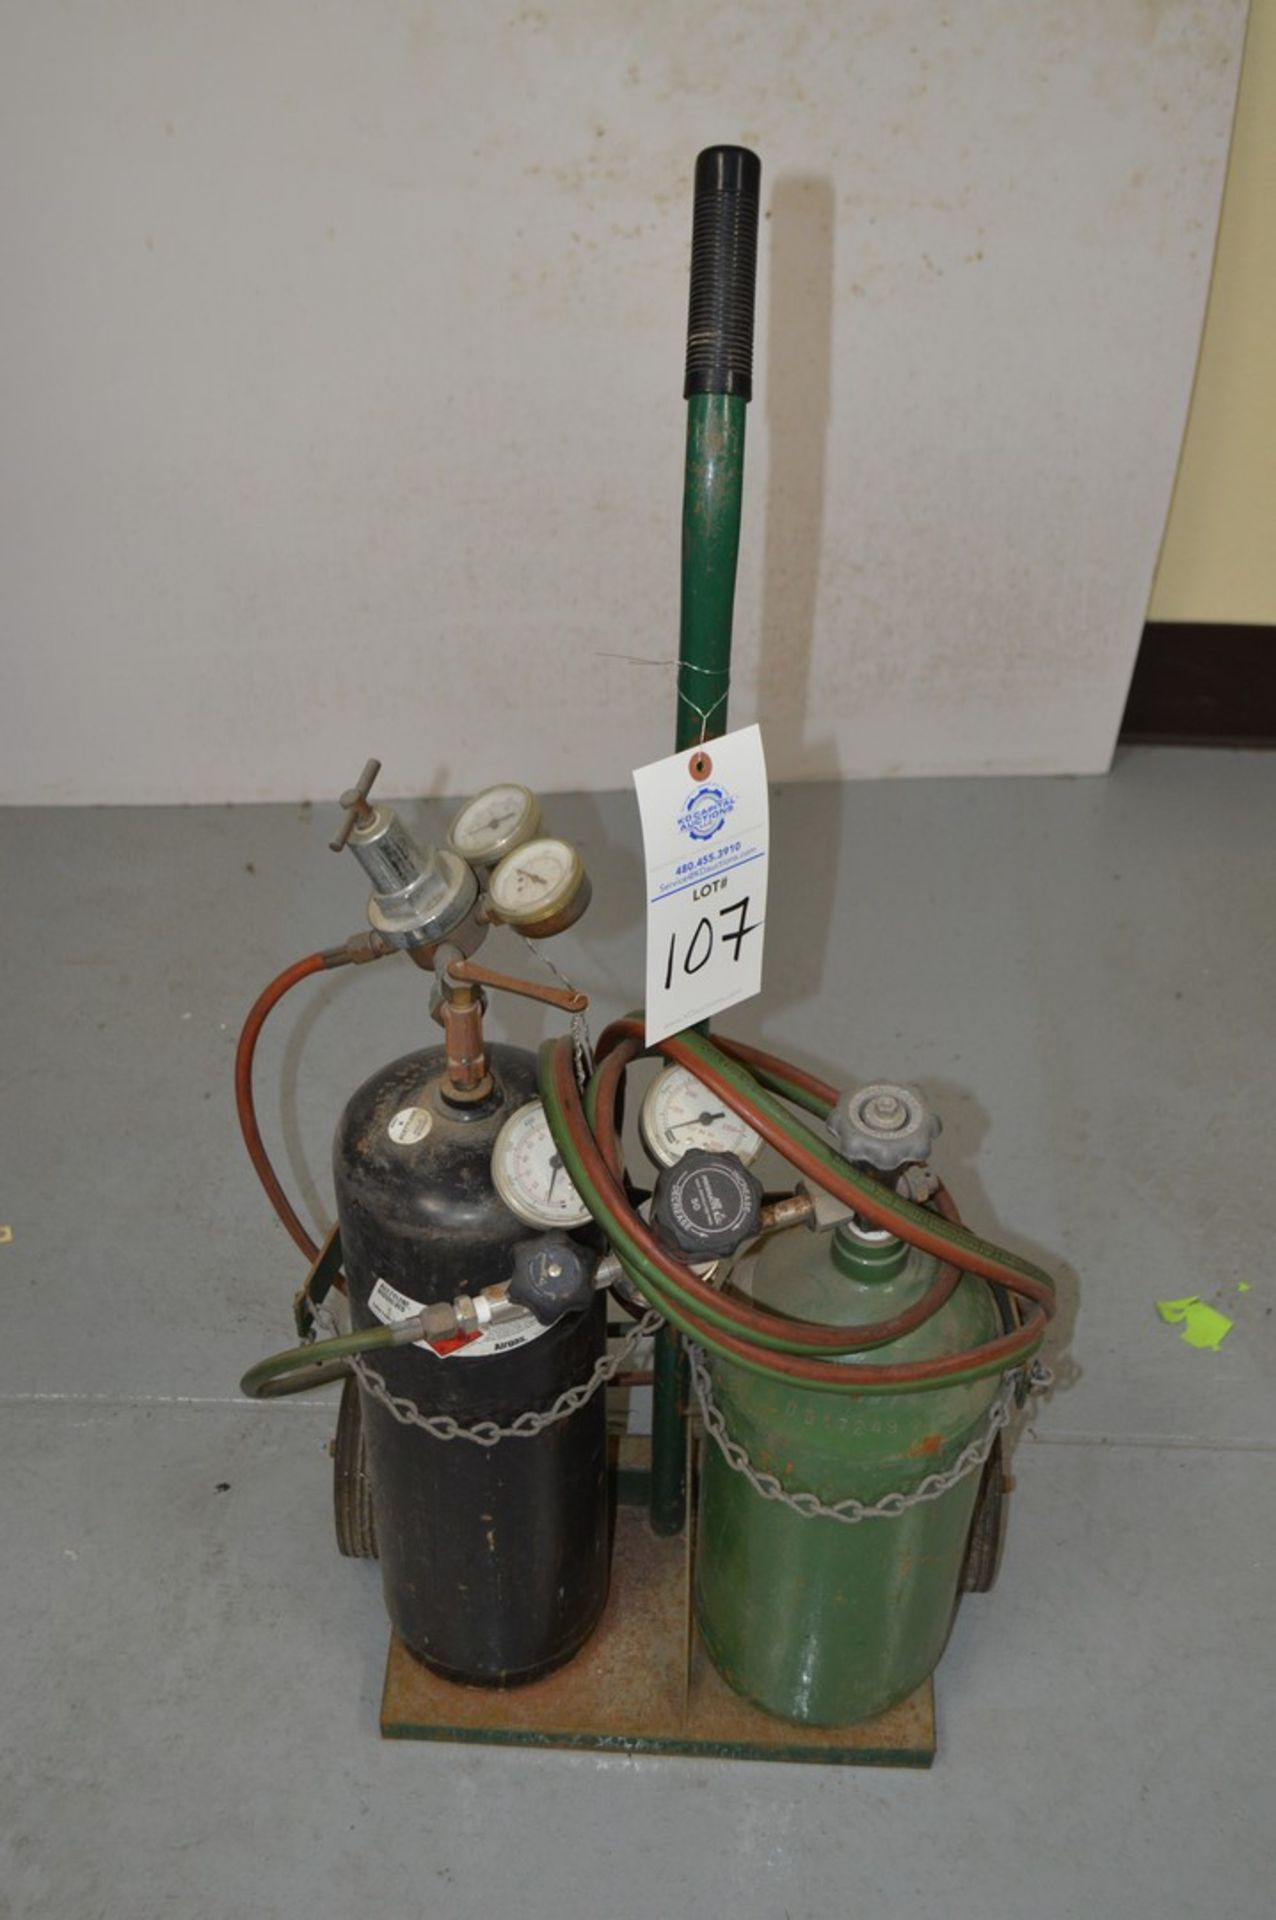 Acetylene torch on small rolling cart